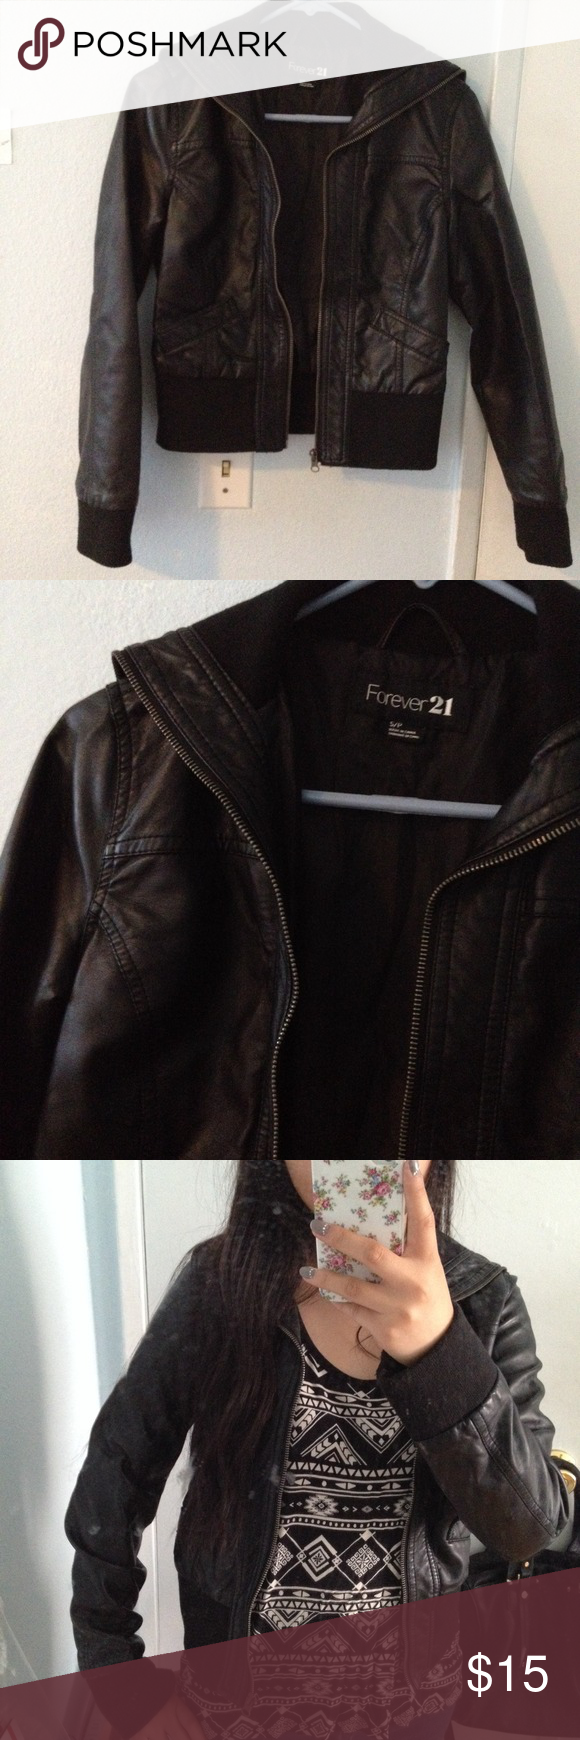 Forever 21 Black Leather Jacket In Excellent Condition No Imperfections Visible Slimming Fit S Black Faux Leather Jacket Leather Jacket Faux Leather Jackets [ 1740 x 580 Pixel ]